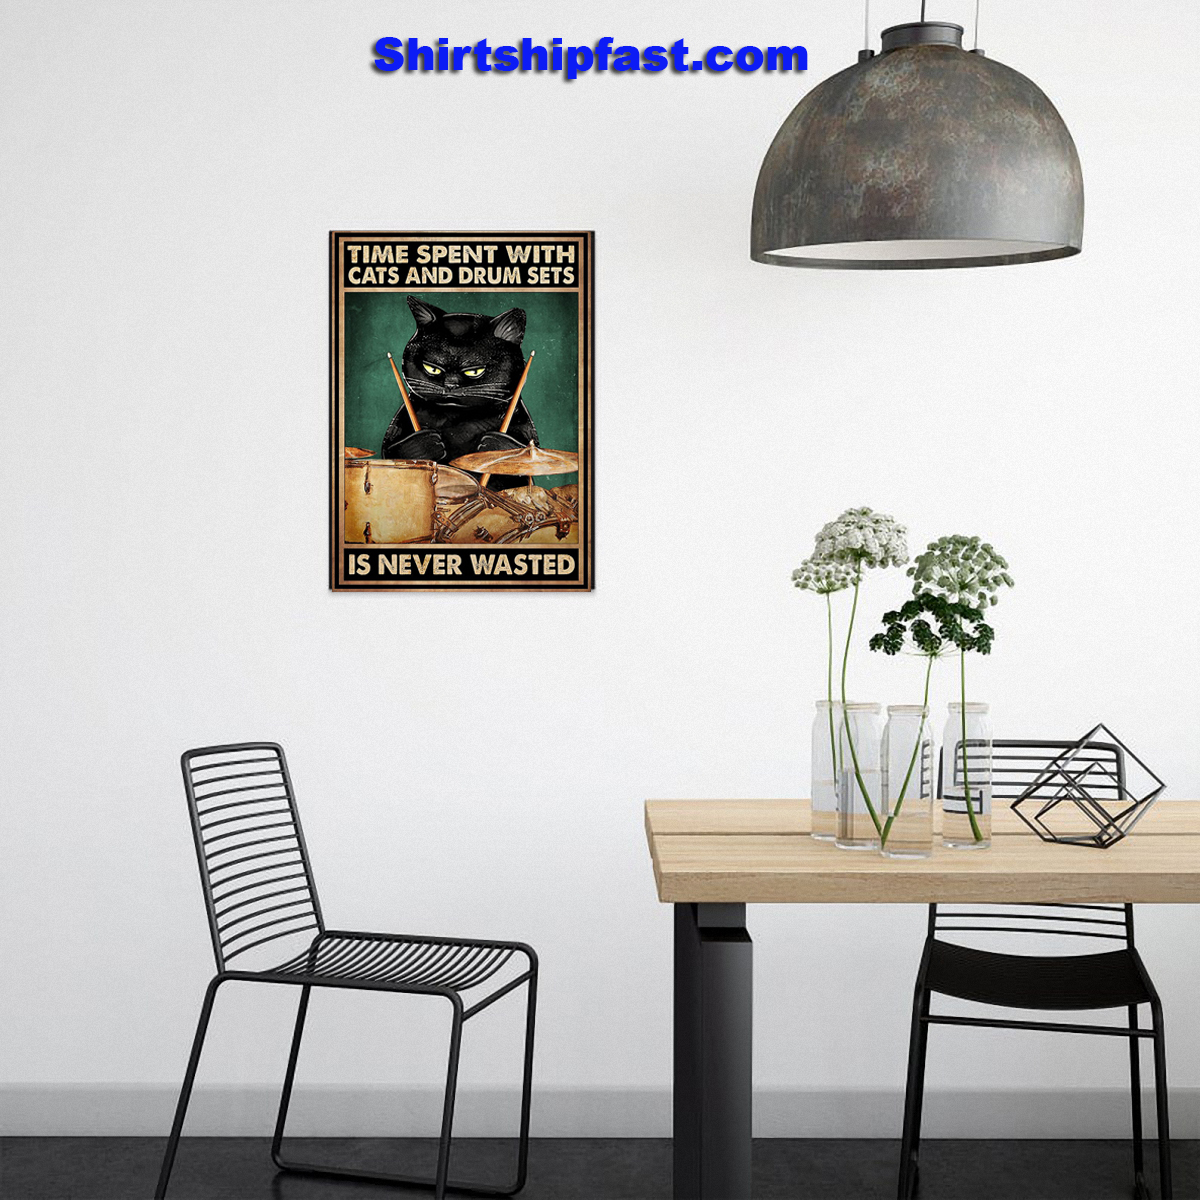 Time spent with cats and drum sets is never wasted poster